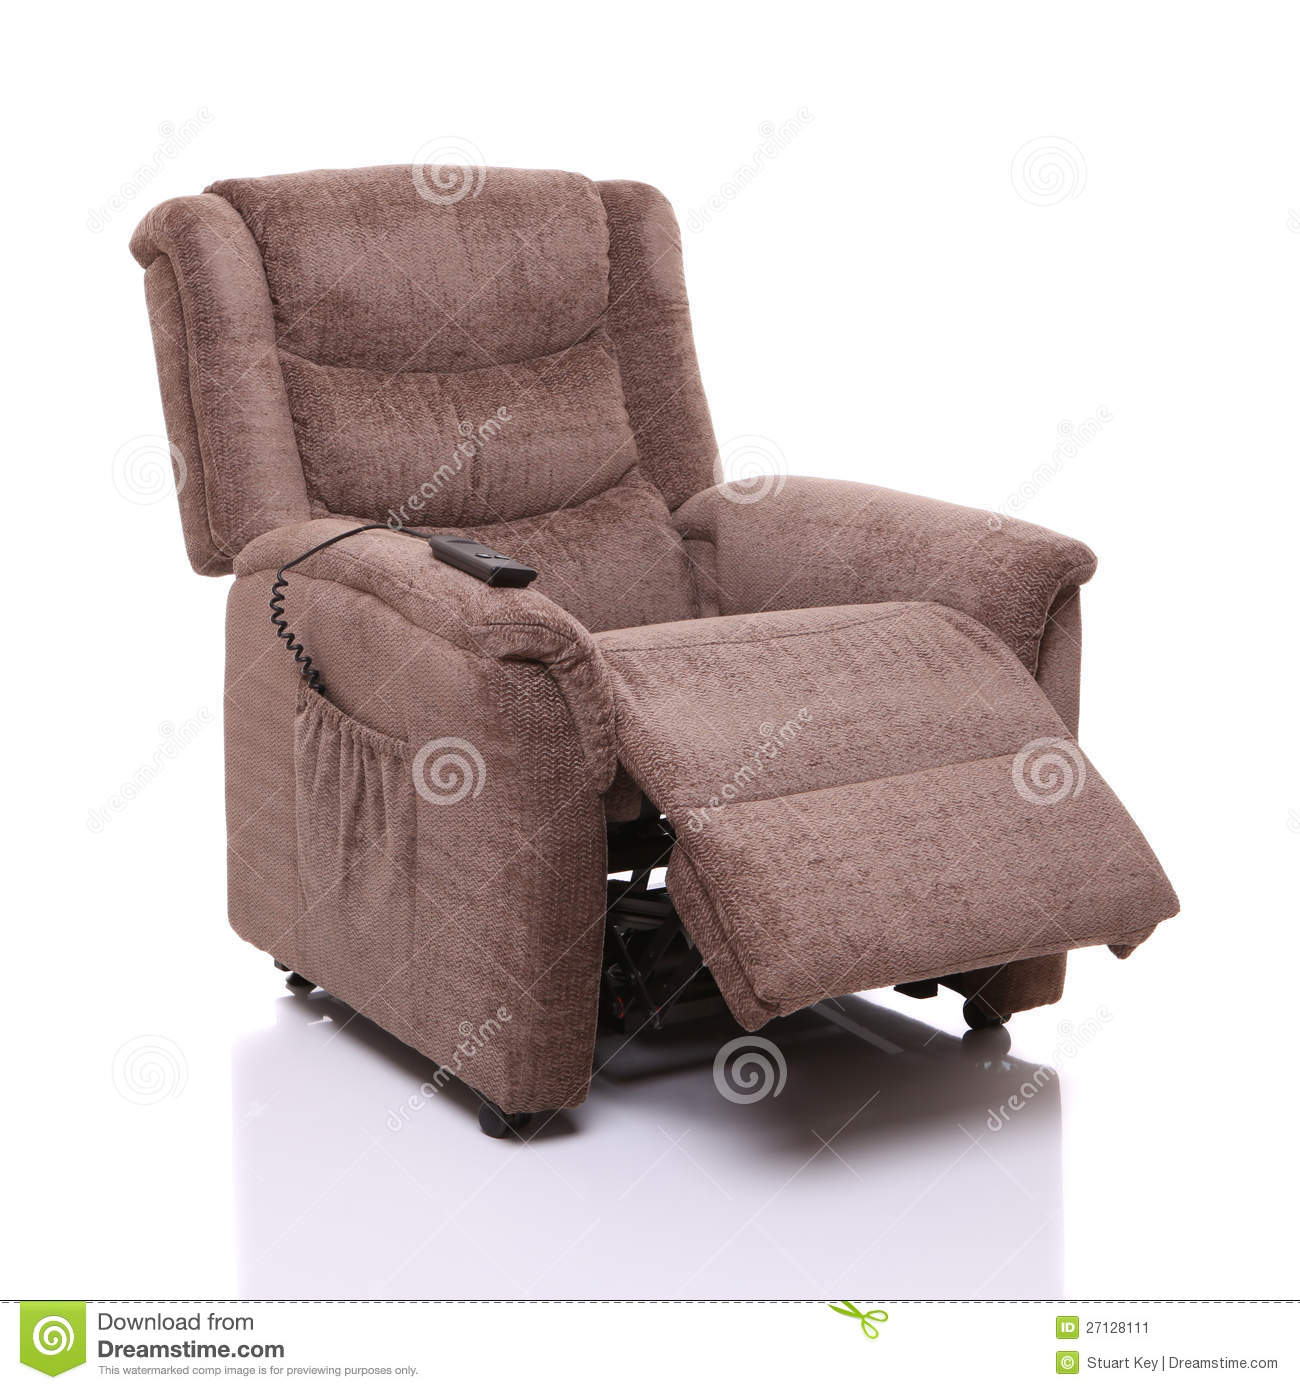 Bon Rise And Recline Chair, Partially Reclined.